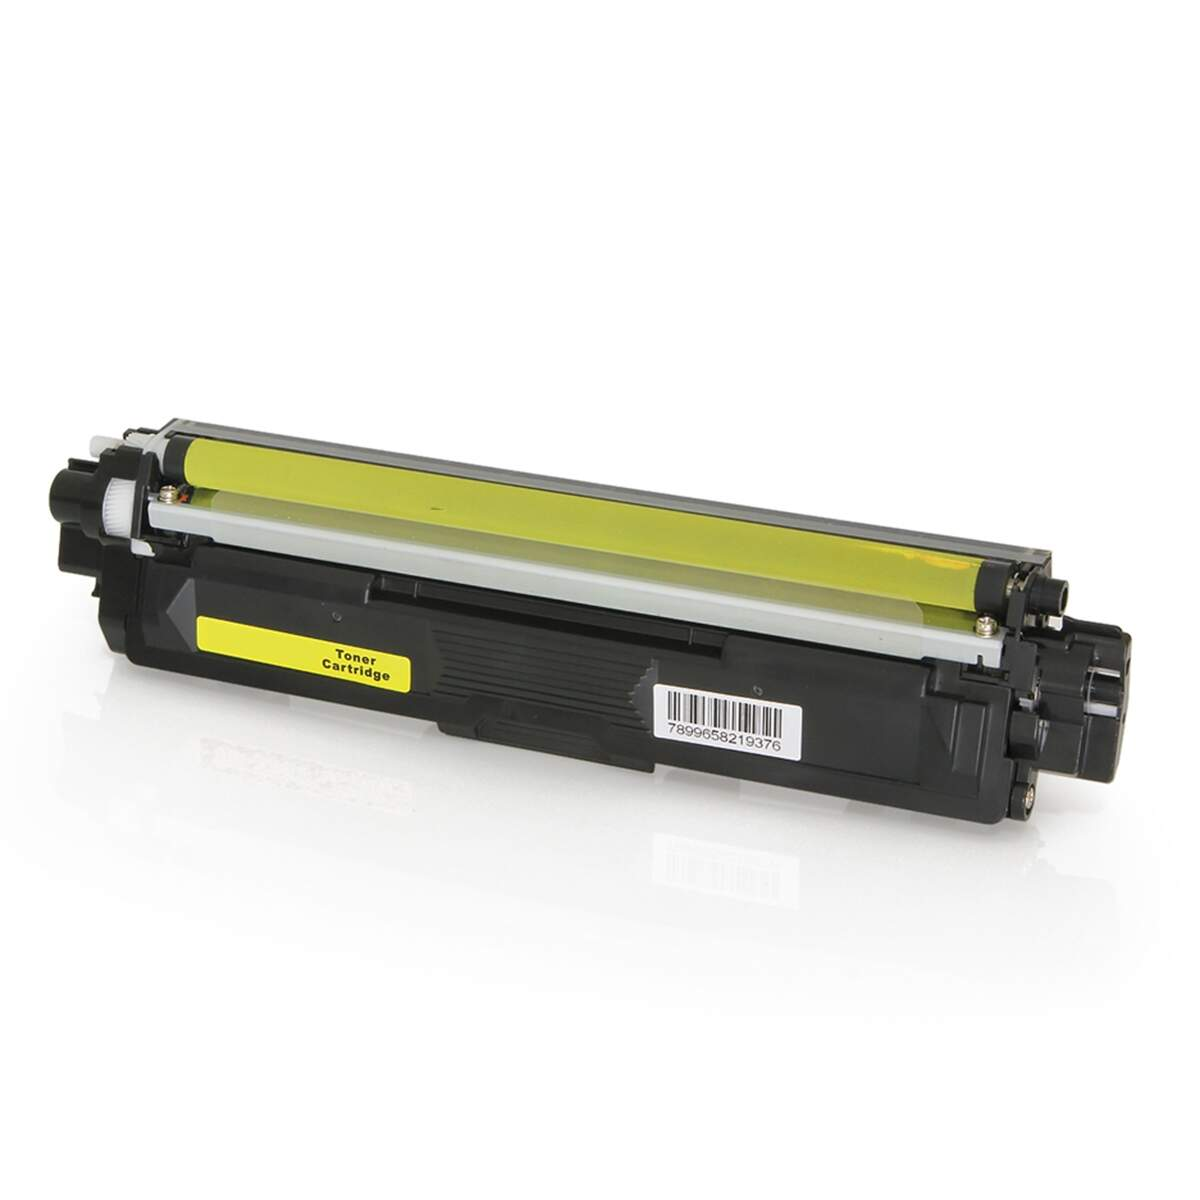 Toner Brother TN221 | TN-225YE | HL3140 | HL3170 | MFC9130 | MFC9330 | DCP9020 | Amarelo (Yellow) Compatível 2,2K